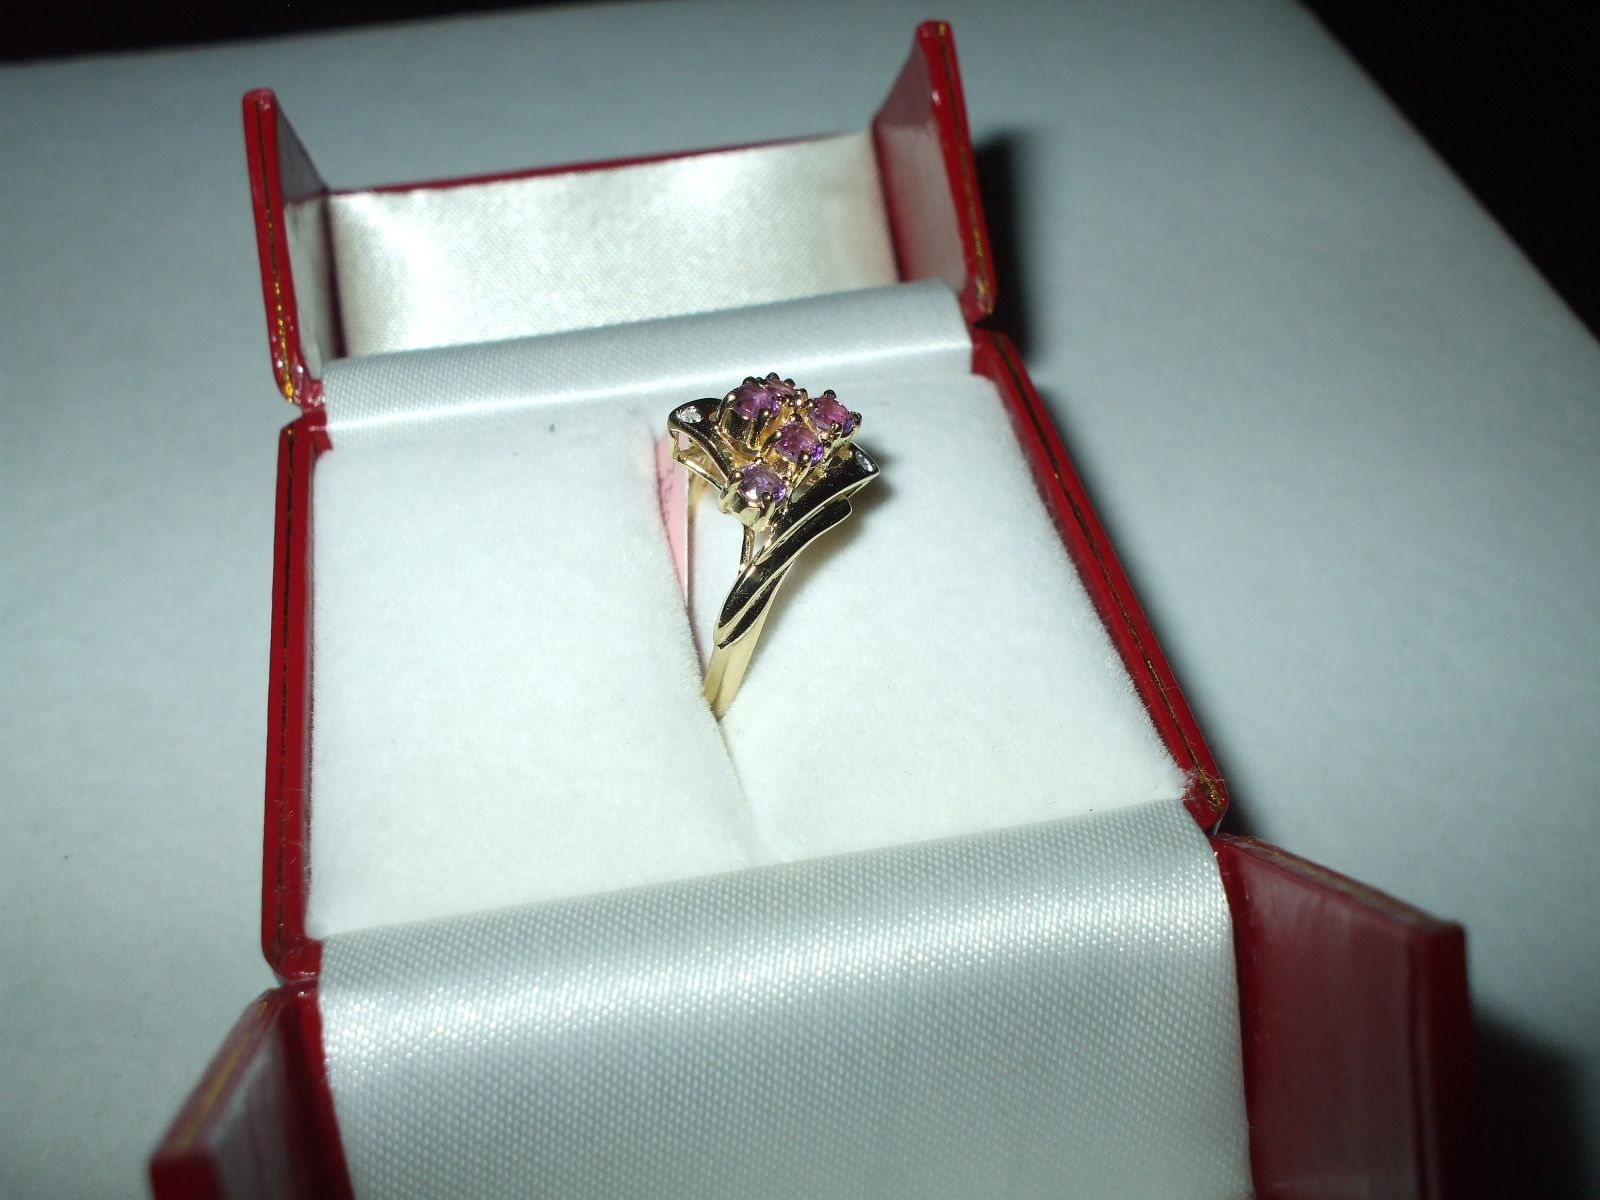 Genuine 1.20 ct Amethyst and Diamond Ring 14K yellow gold NWT $800